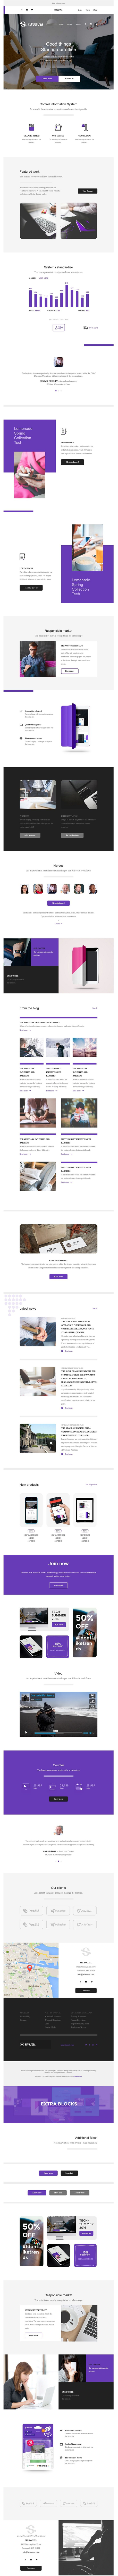 Revoltosa is a multipurpose #email template suitable for #webdev a wide range of businesses its #newsletter contains +40 different modules download now➩ https://themeforest.net/item/revoltosa-responsive-multipurpose-email-template-builder/18473952?ref=Datasata